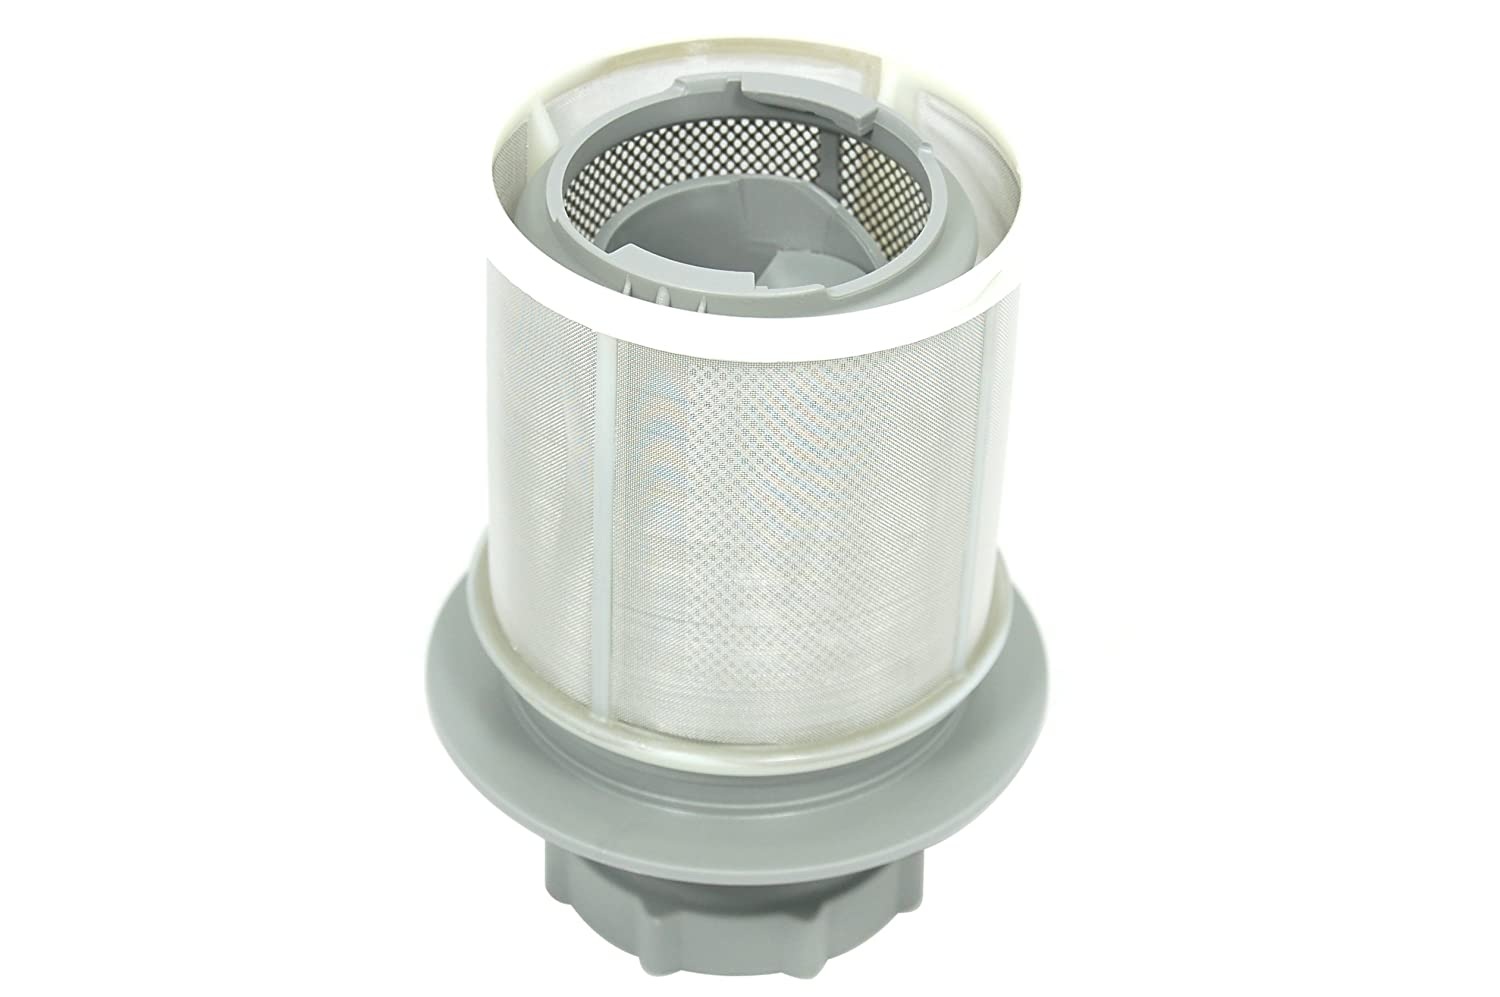 Bosch Genuine Neff Dishwasher Micro Filter Mesh - Two Part